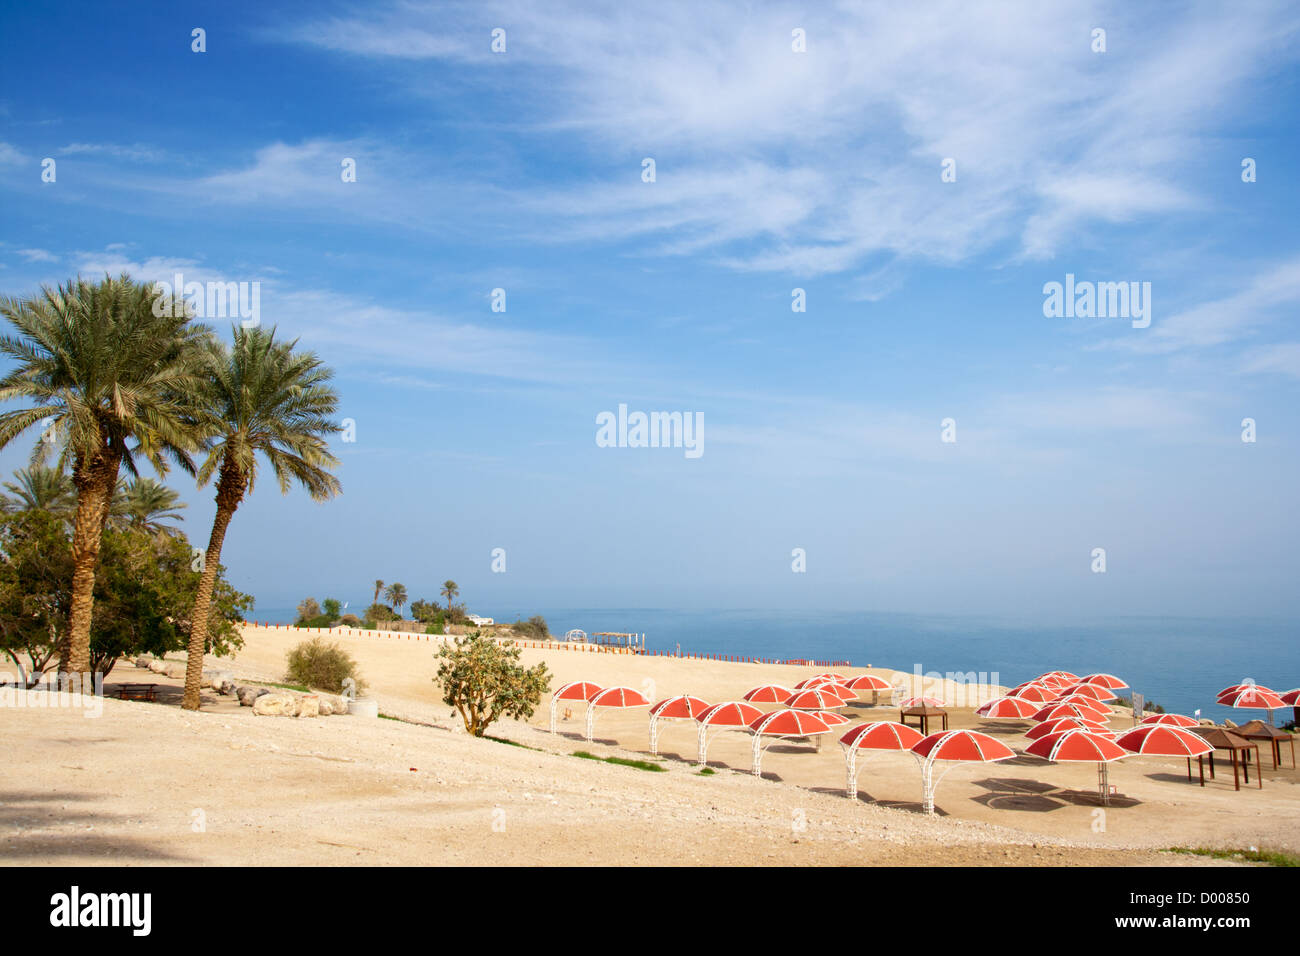 Ein Gedi oase at the Dead Sea. Israel - Stock Image